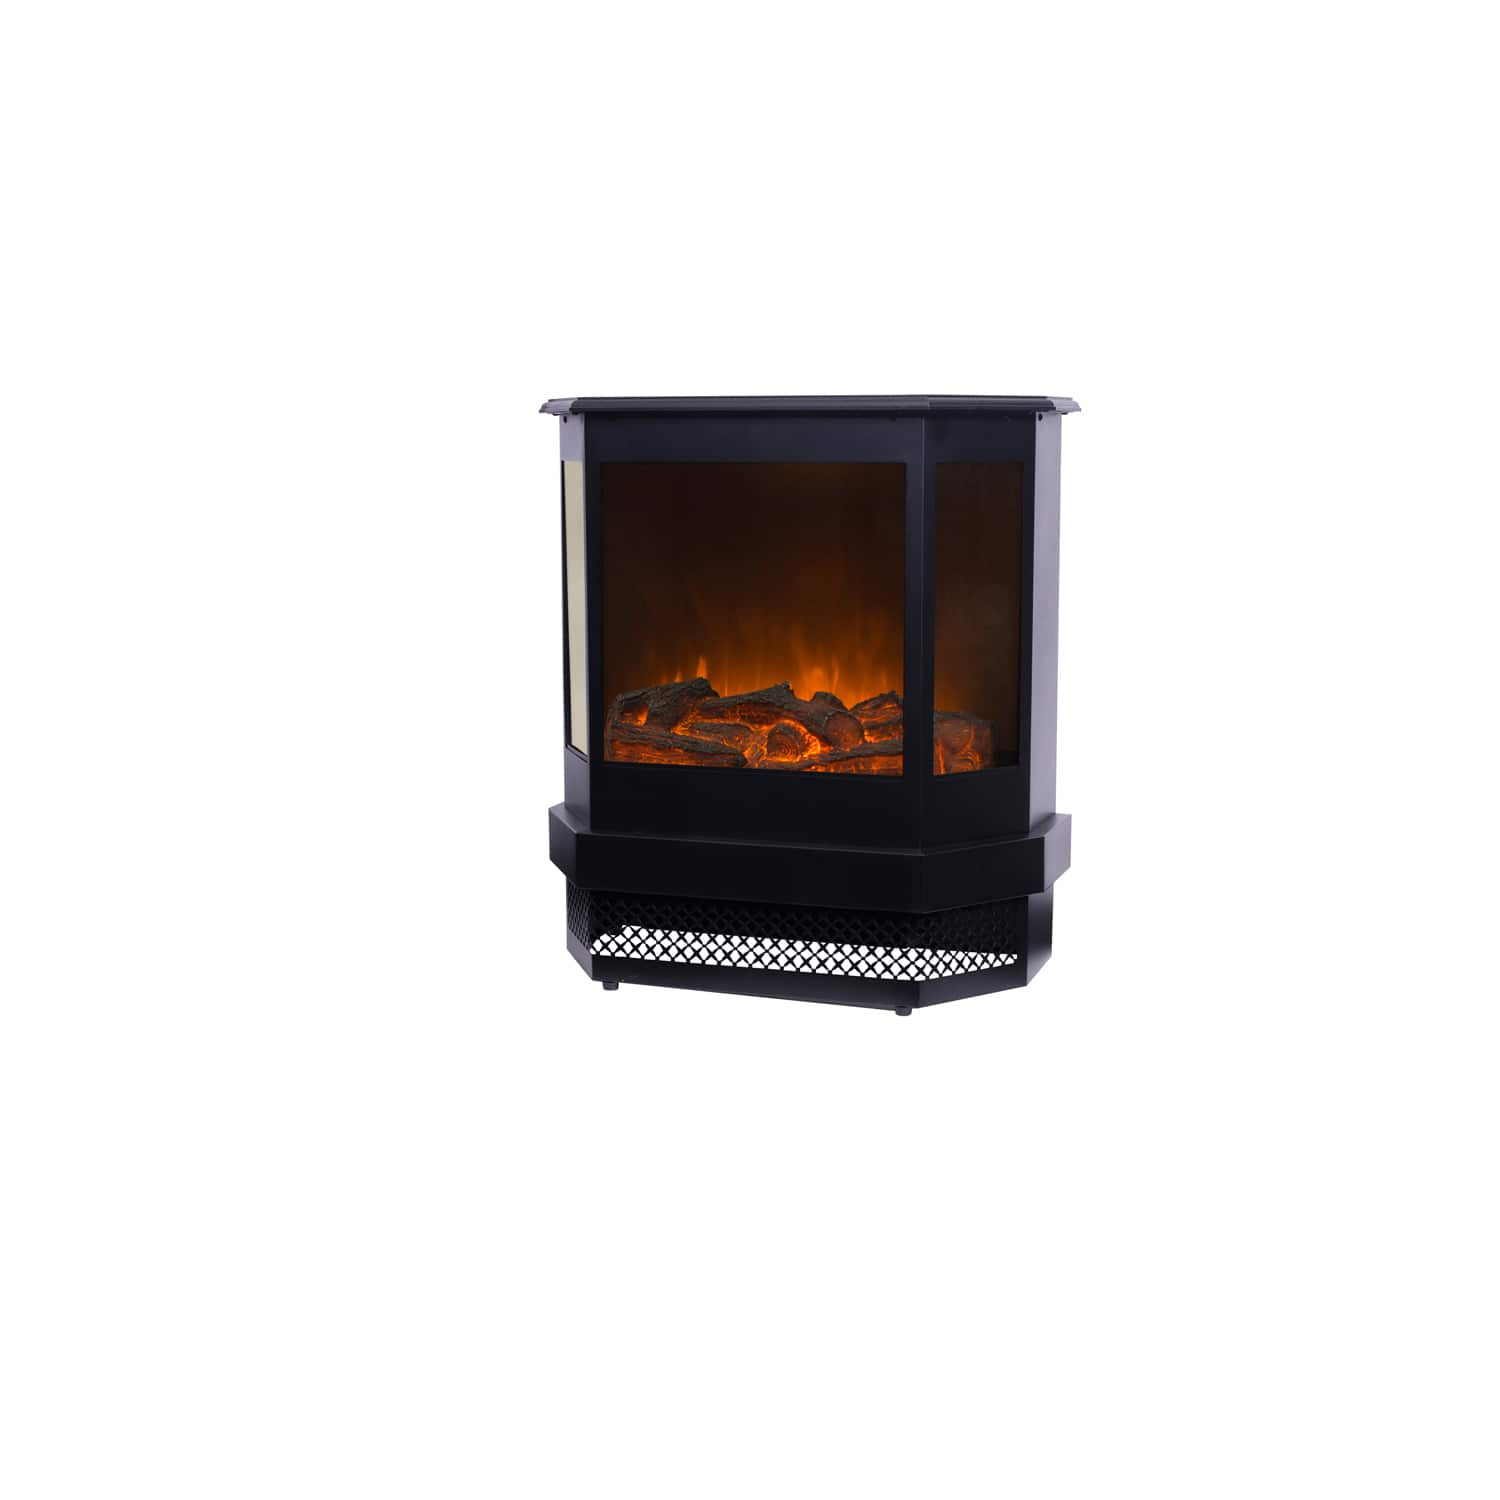 Decor Flame Electric Stove Heater 29 88 Normally 79 With Free